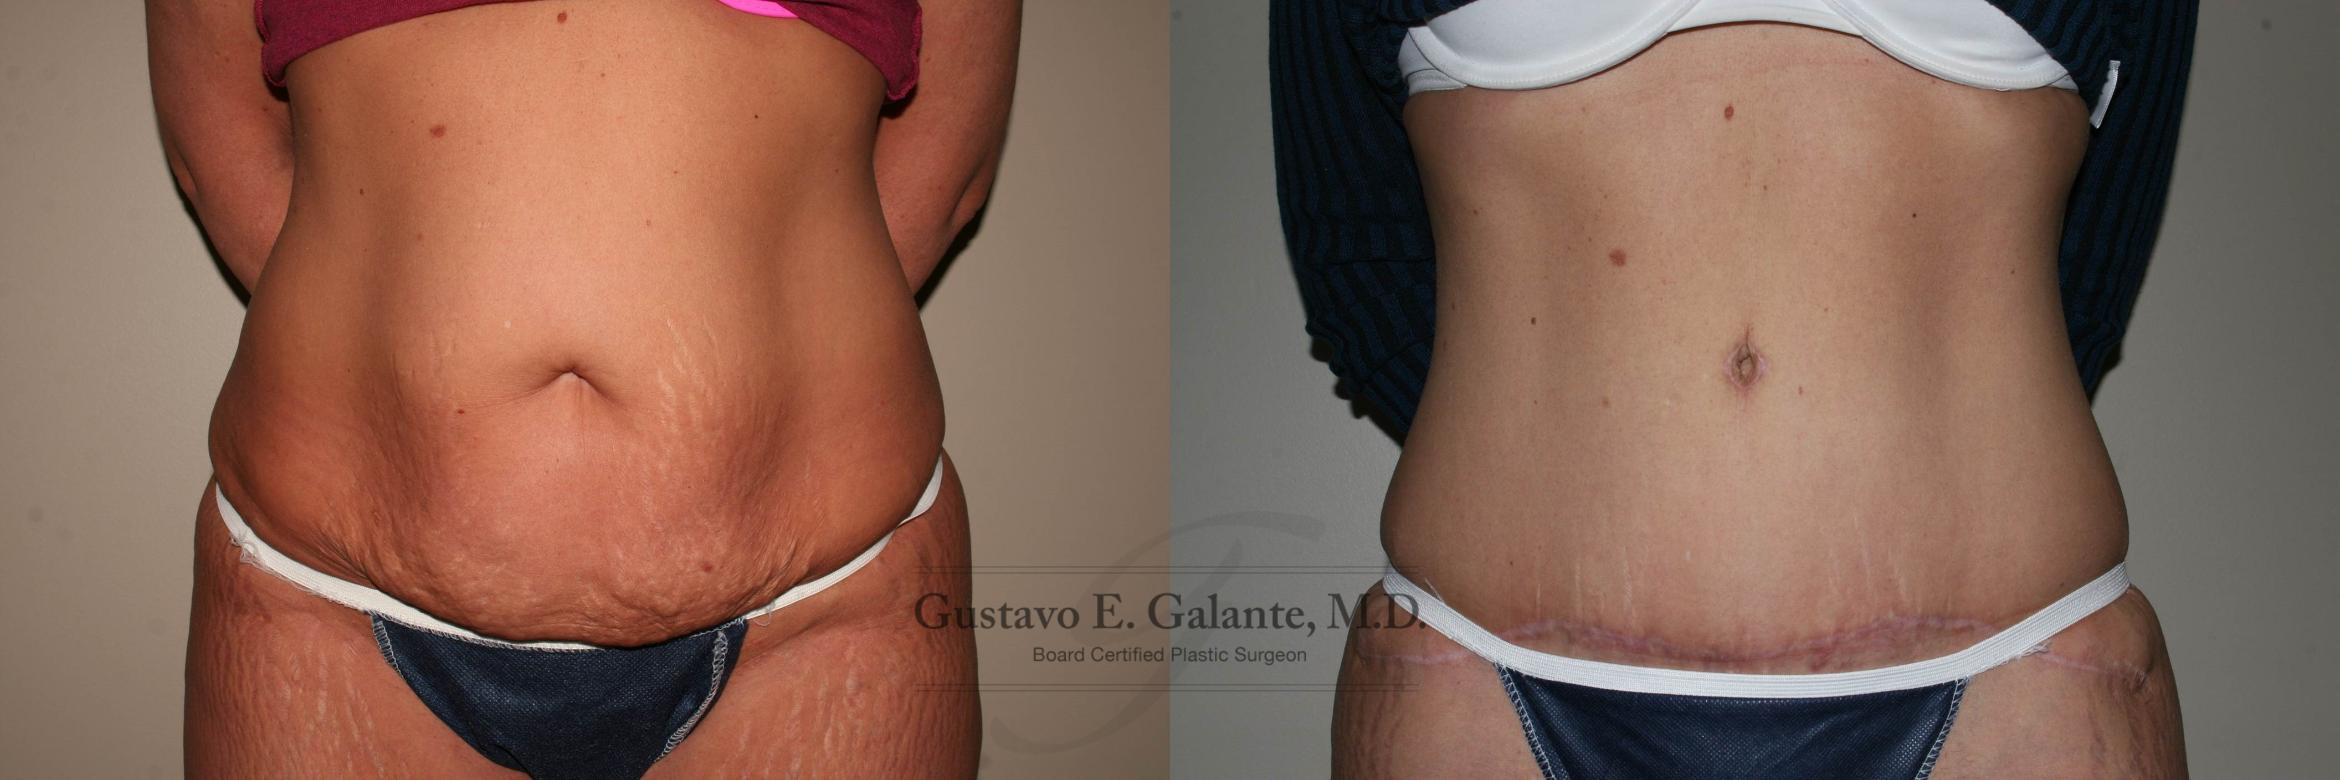 Tummy Tuck (Abdominoplasty) Case 125 Before & After View #1 | Schererville, IN | Gustavo E. Galante, MD